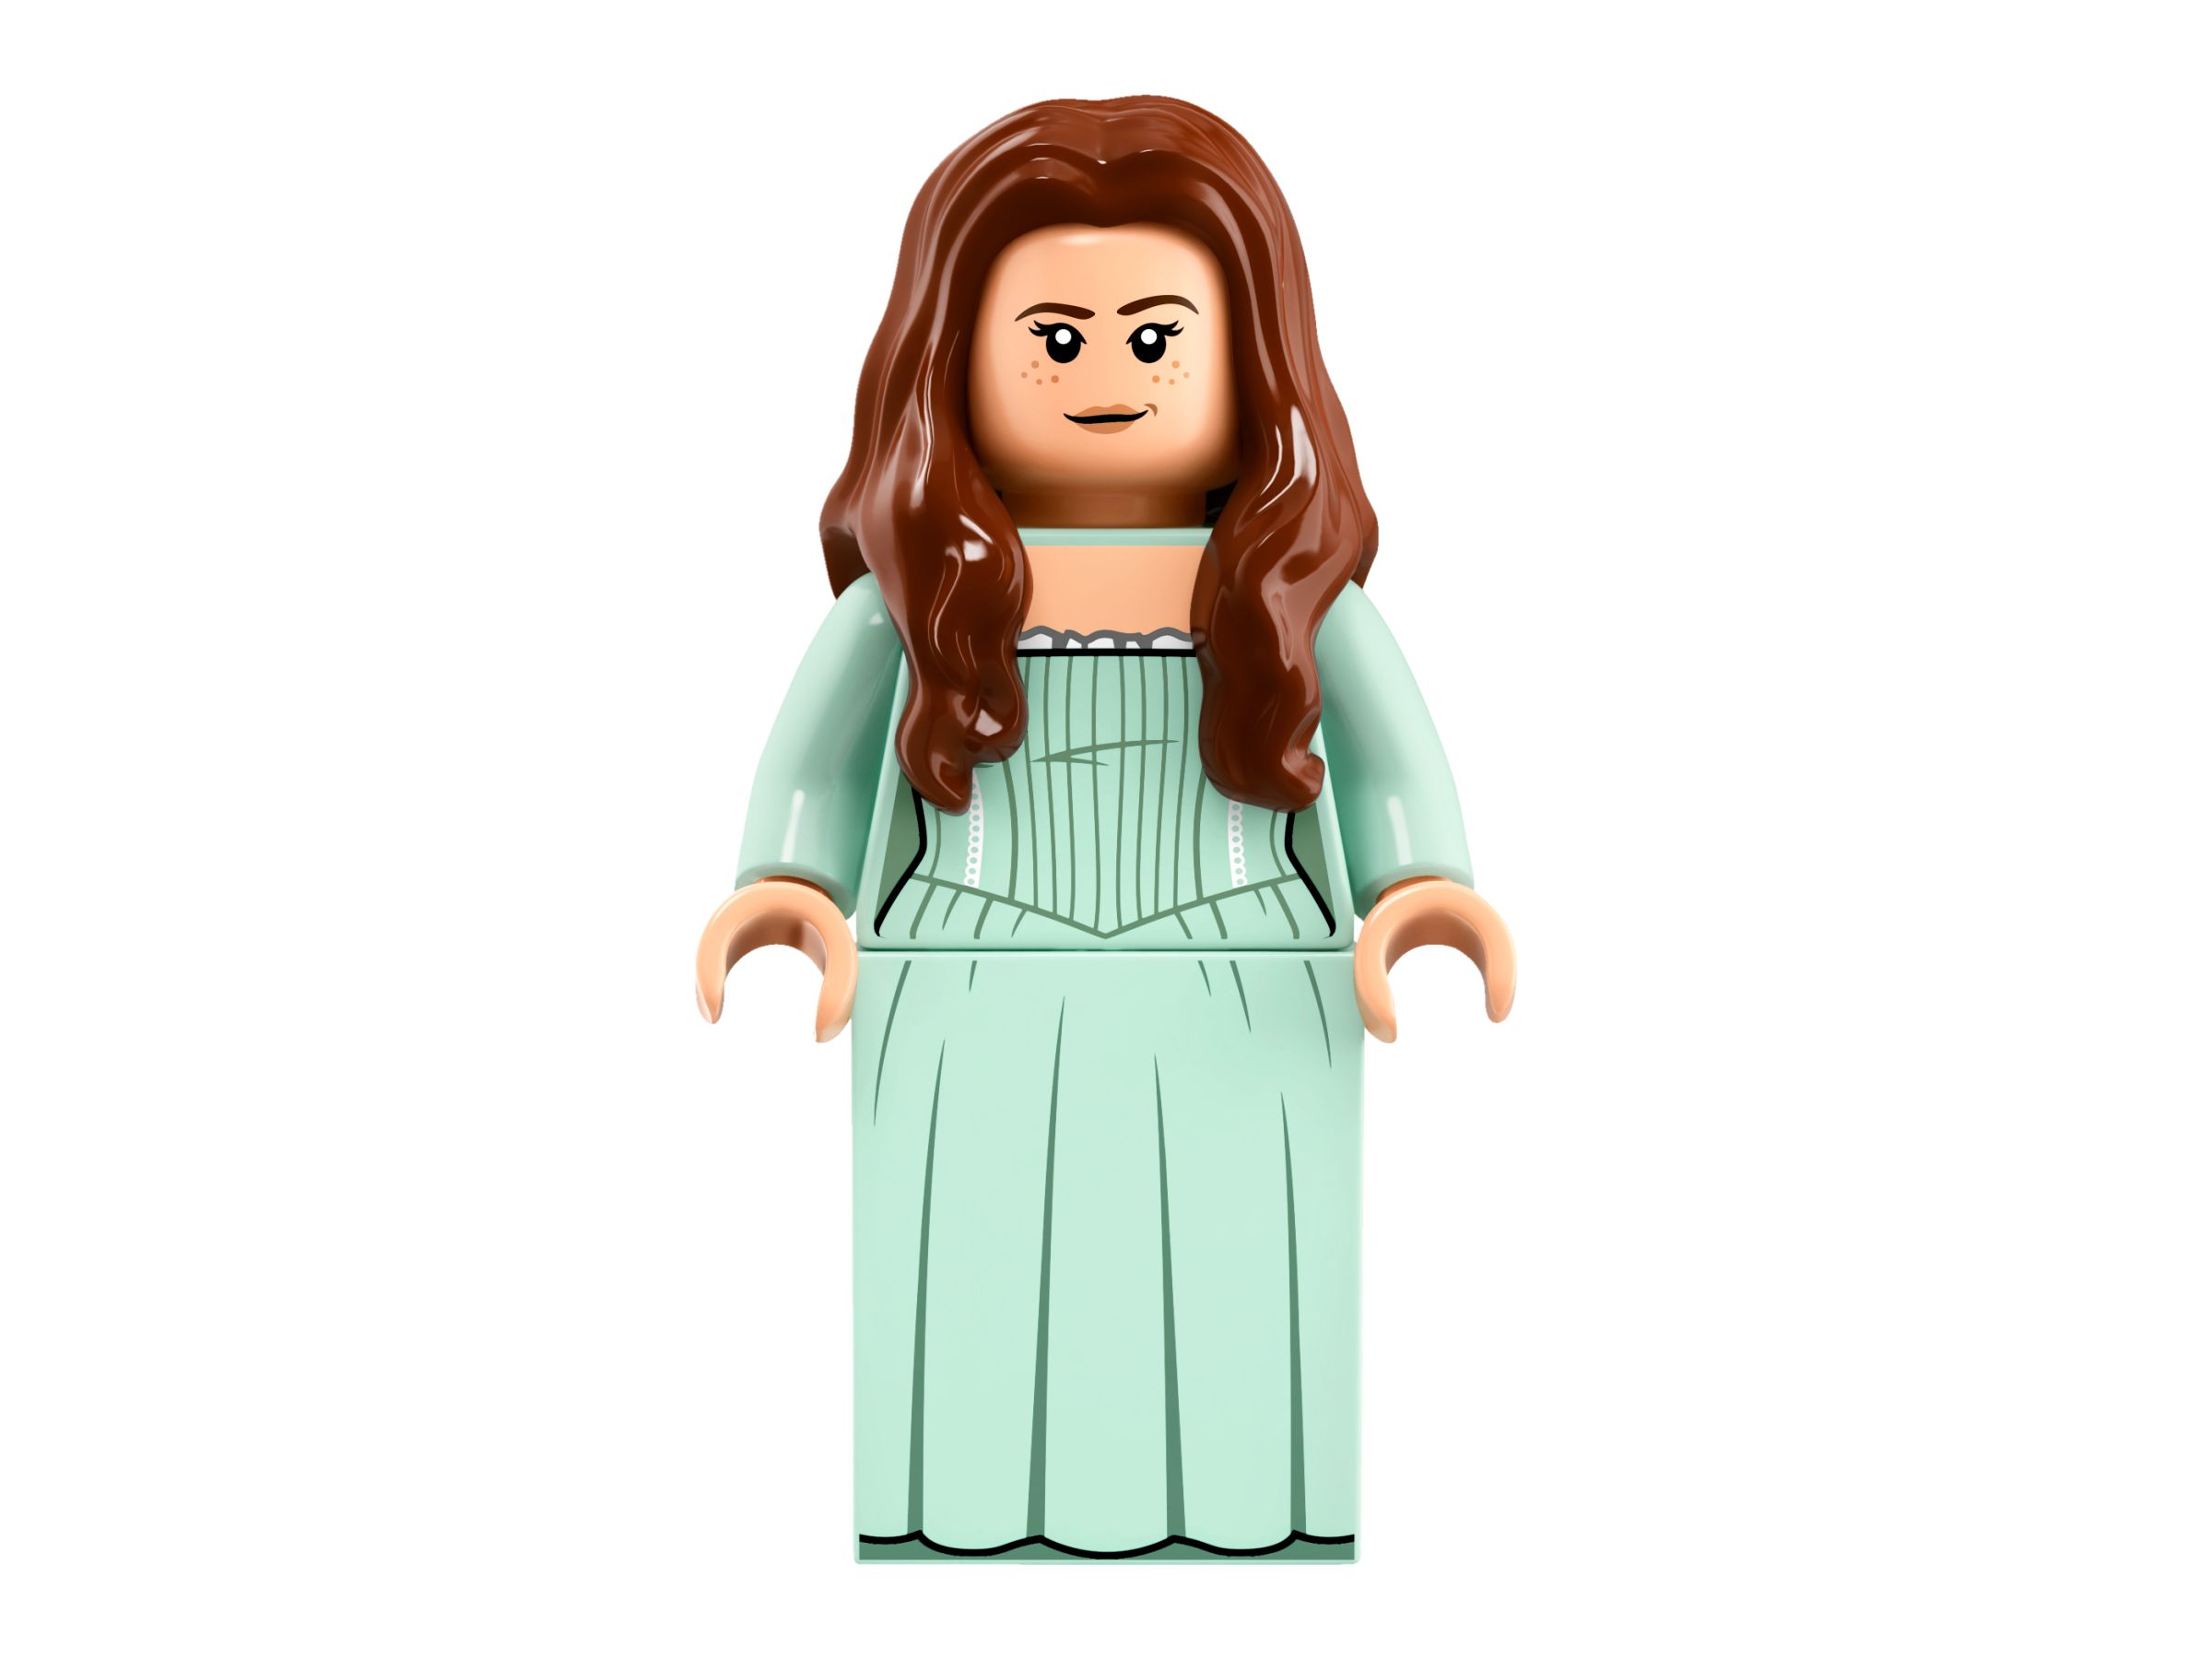 LEGO Advanced Models 71042 Silent Mary LEGO_71042_alt11_Silent_Mary.jpg